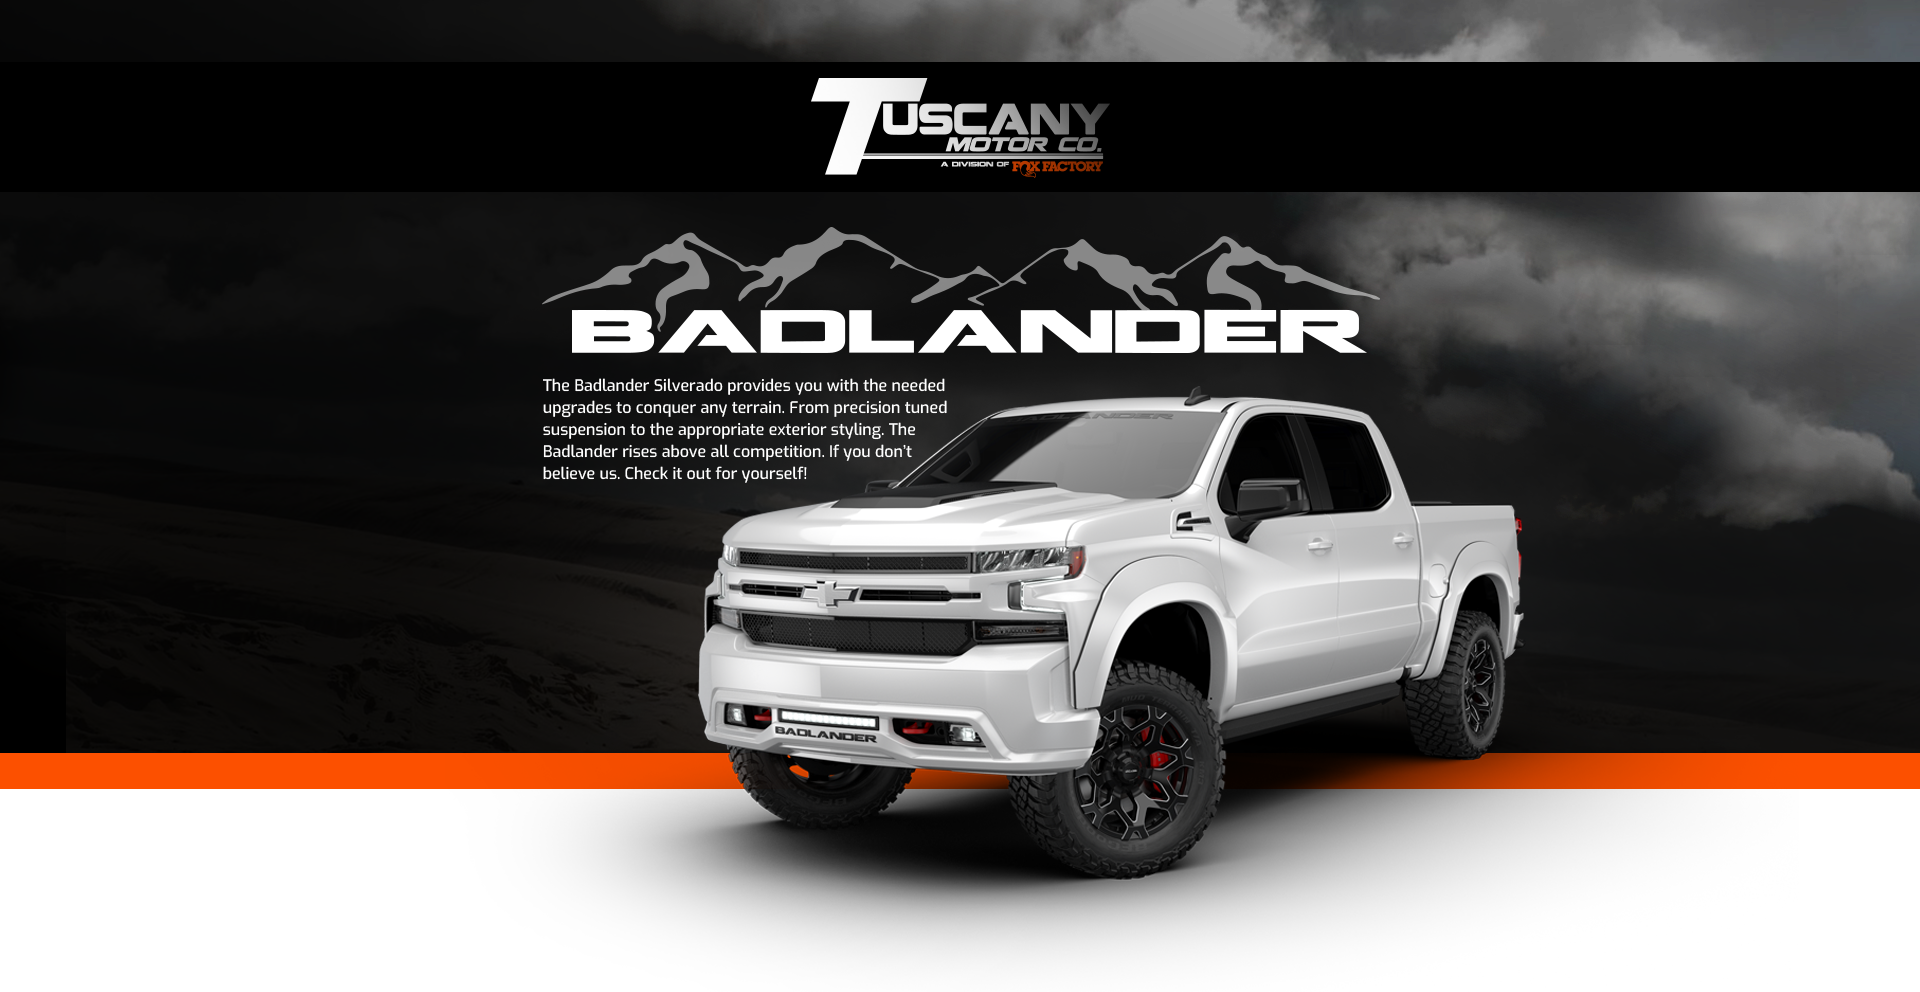 Tuscany Badlander Custom Lifted Chevy Trucks For Sale In Grapevine